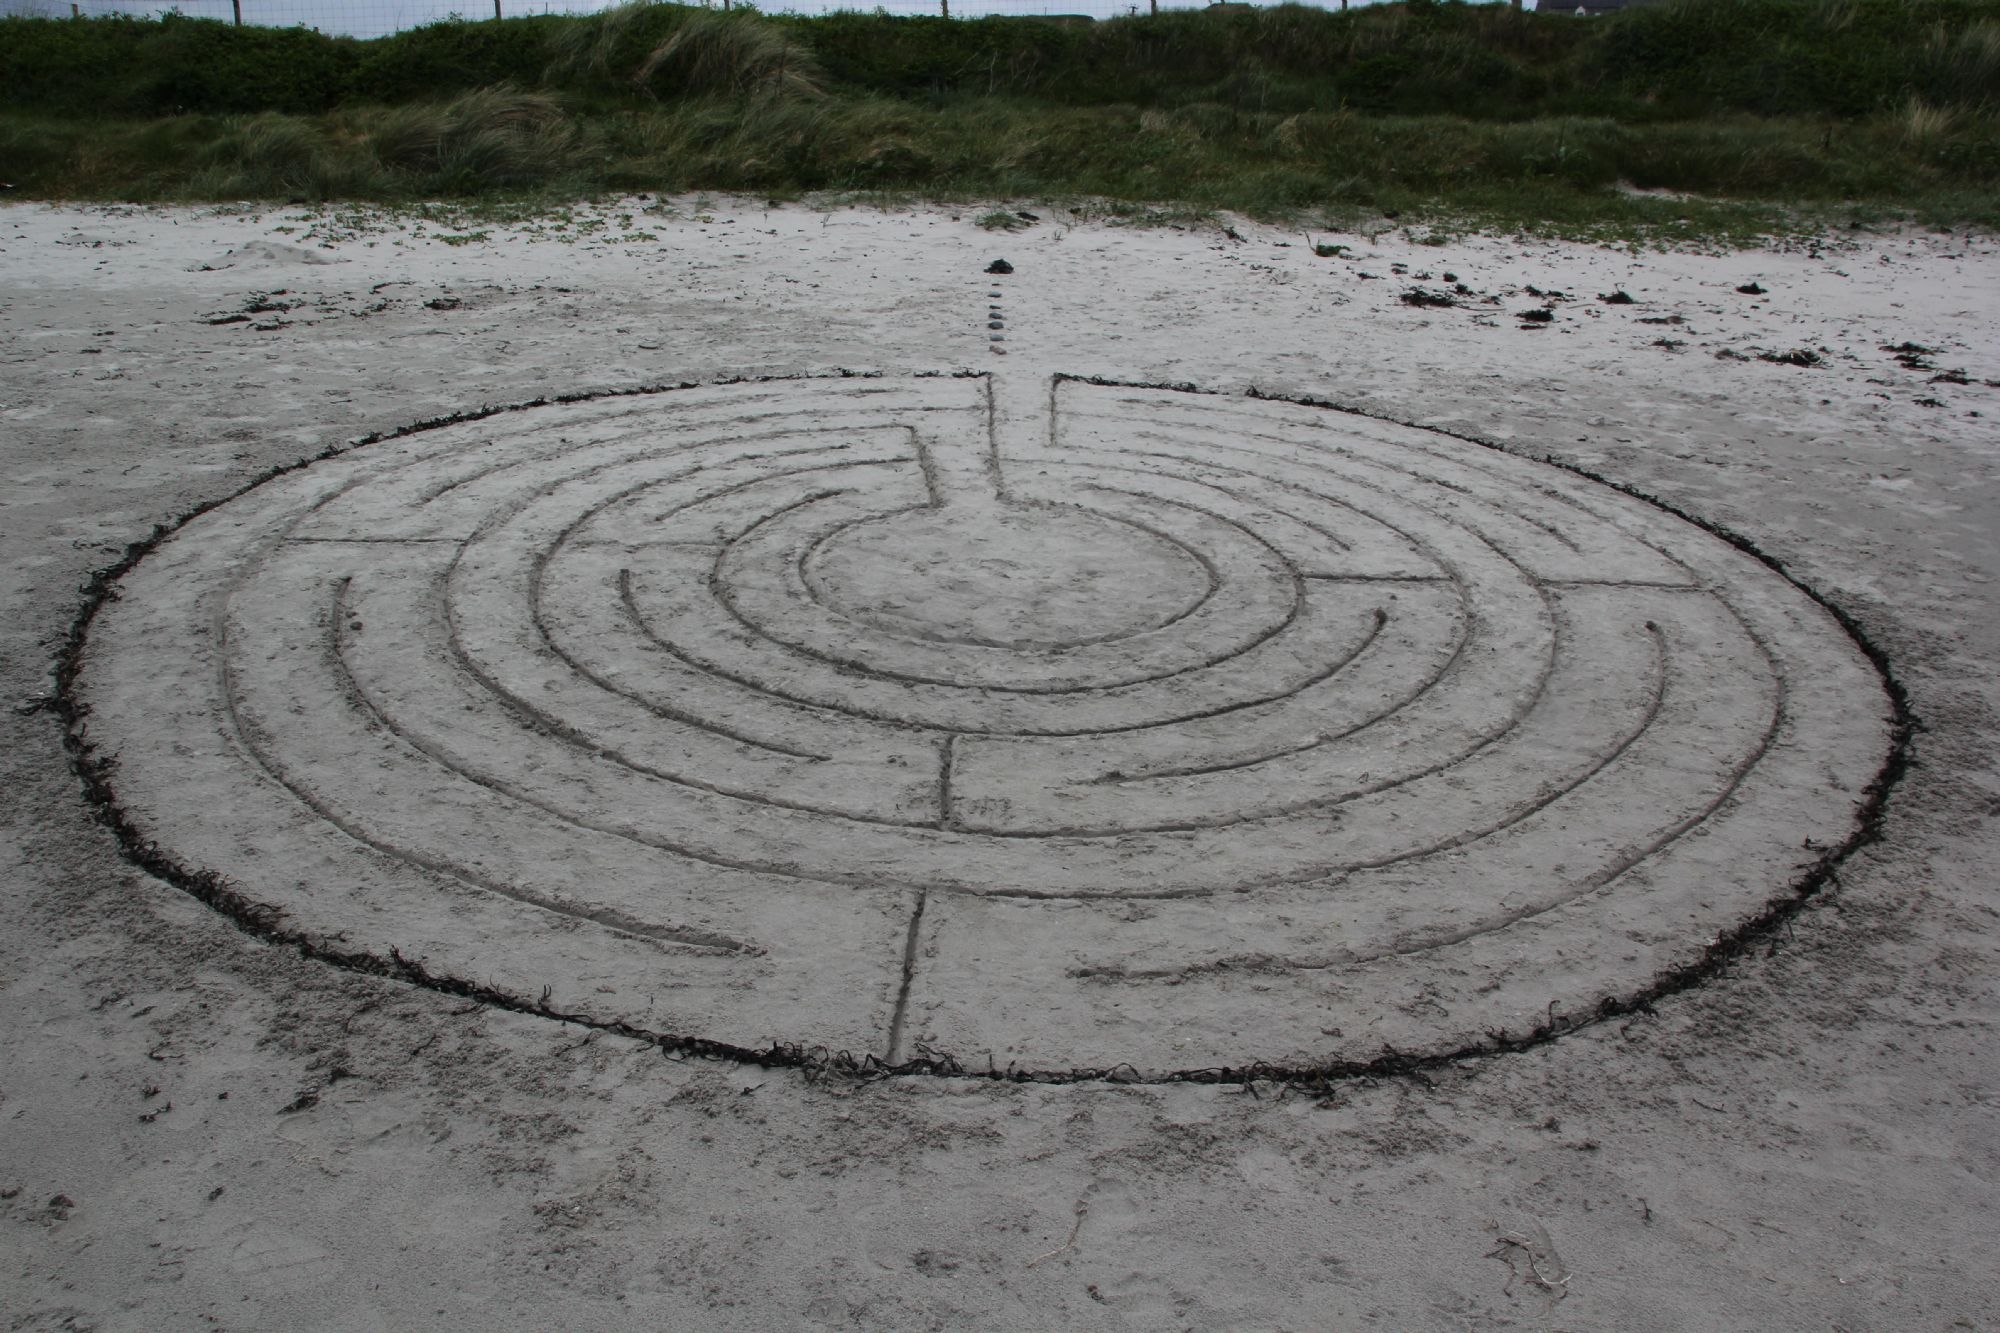 Labrynth in San - Iona